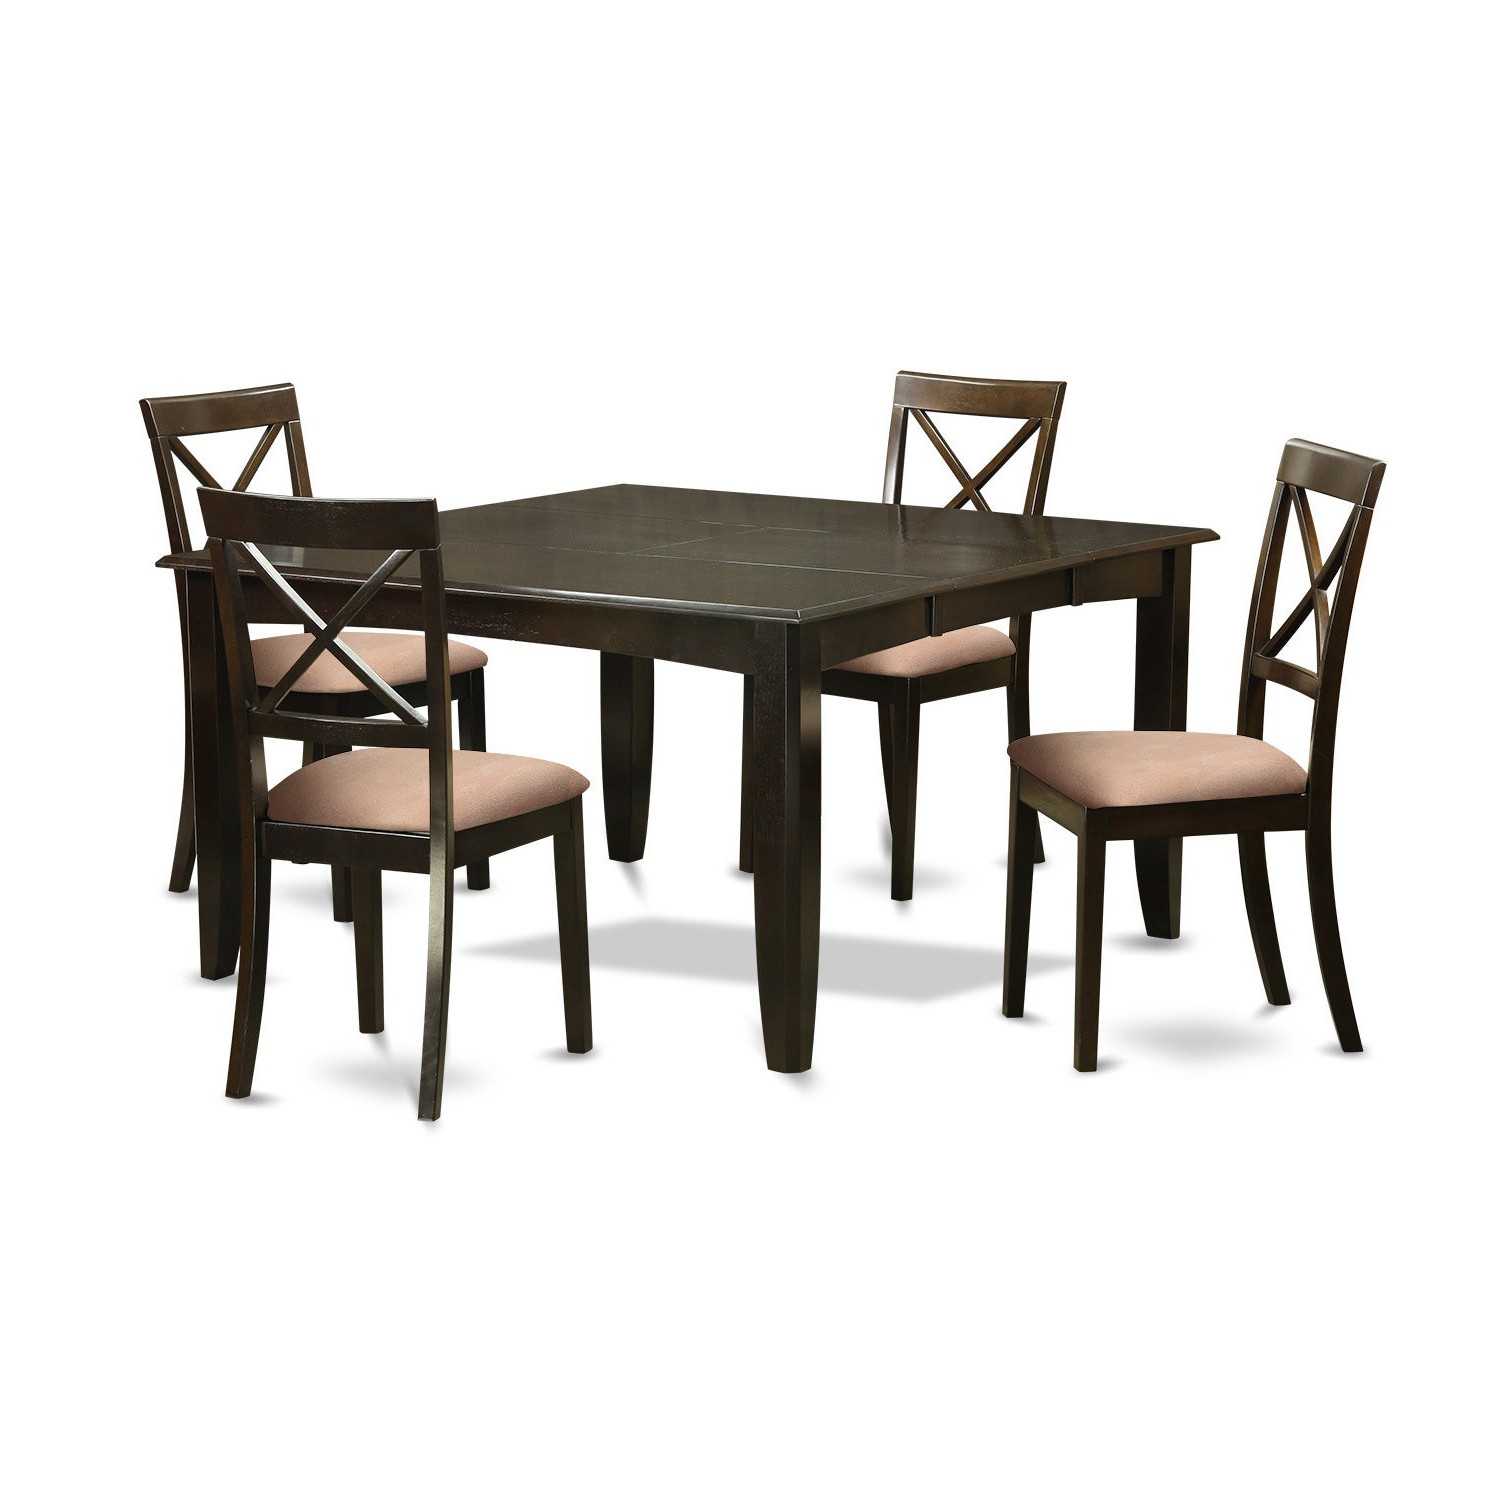 Osterman 6 Piece Extendable Dining Sets (Set Of 6) In Favorite Buy 6 Piece Sets Kitchen & Dining Room Sets Online At Overstock (View 5 of 25)